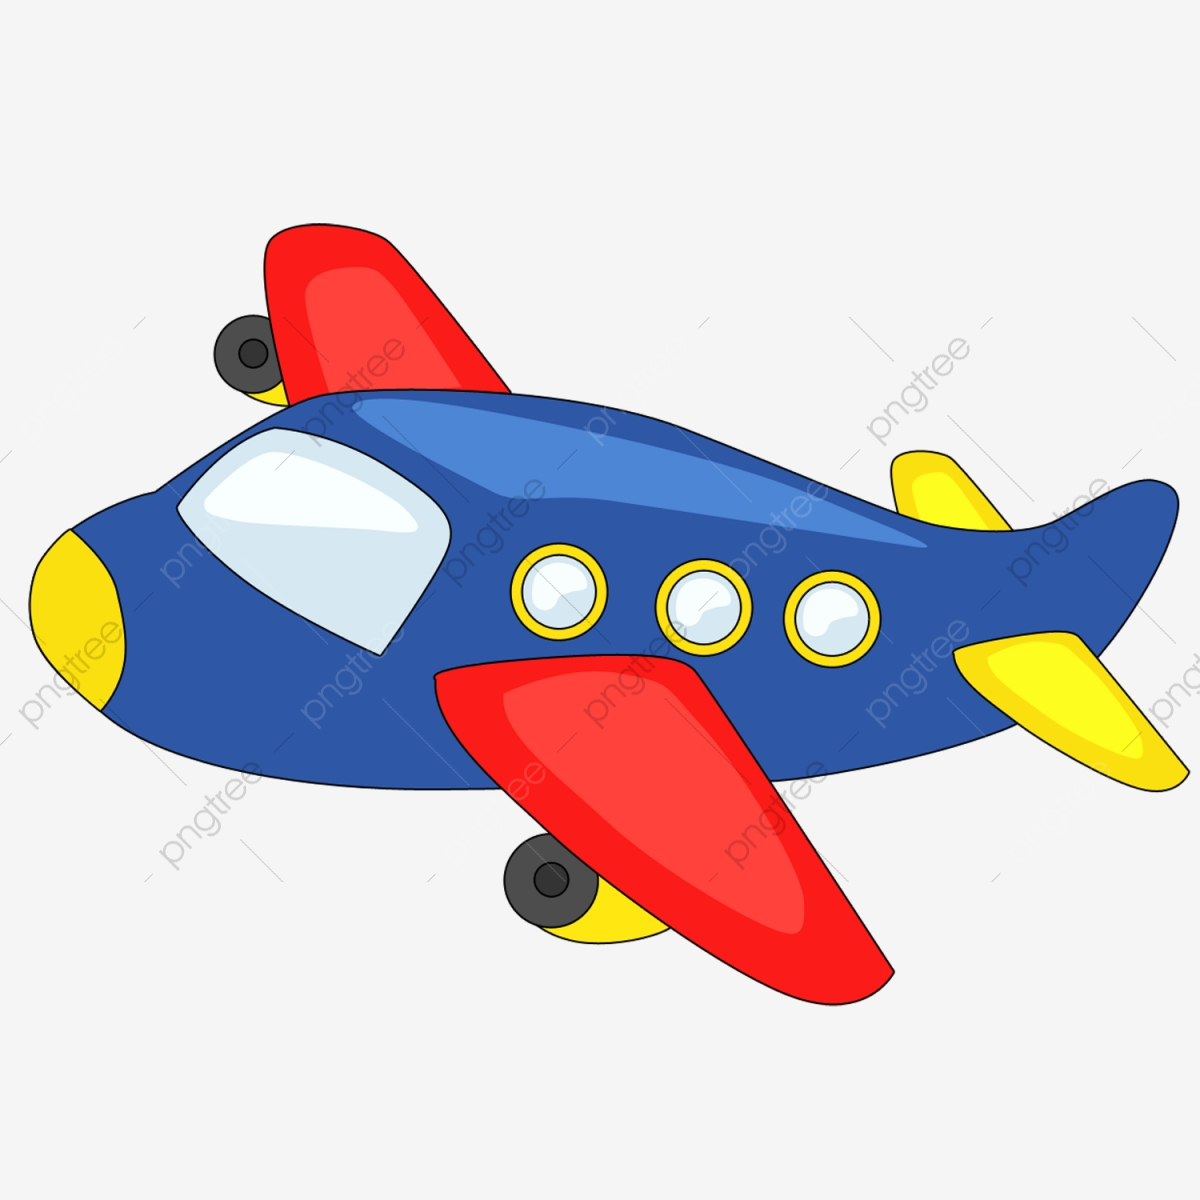 hight resolution of commercial use resource upgrade to premium plan and get license authorization upgradenow aeroplane clipart